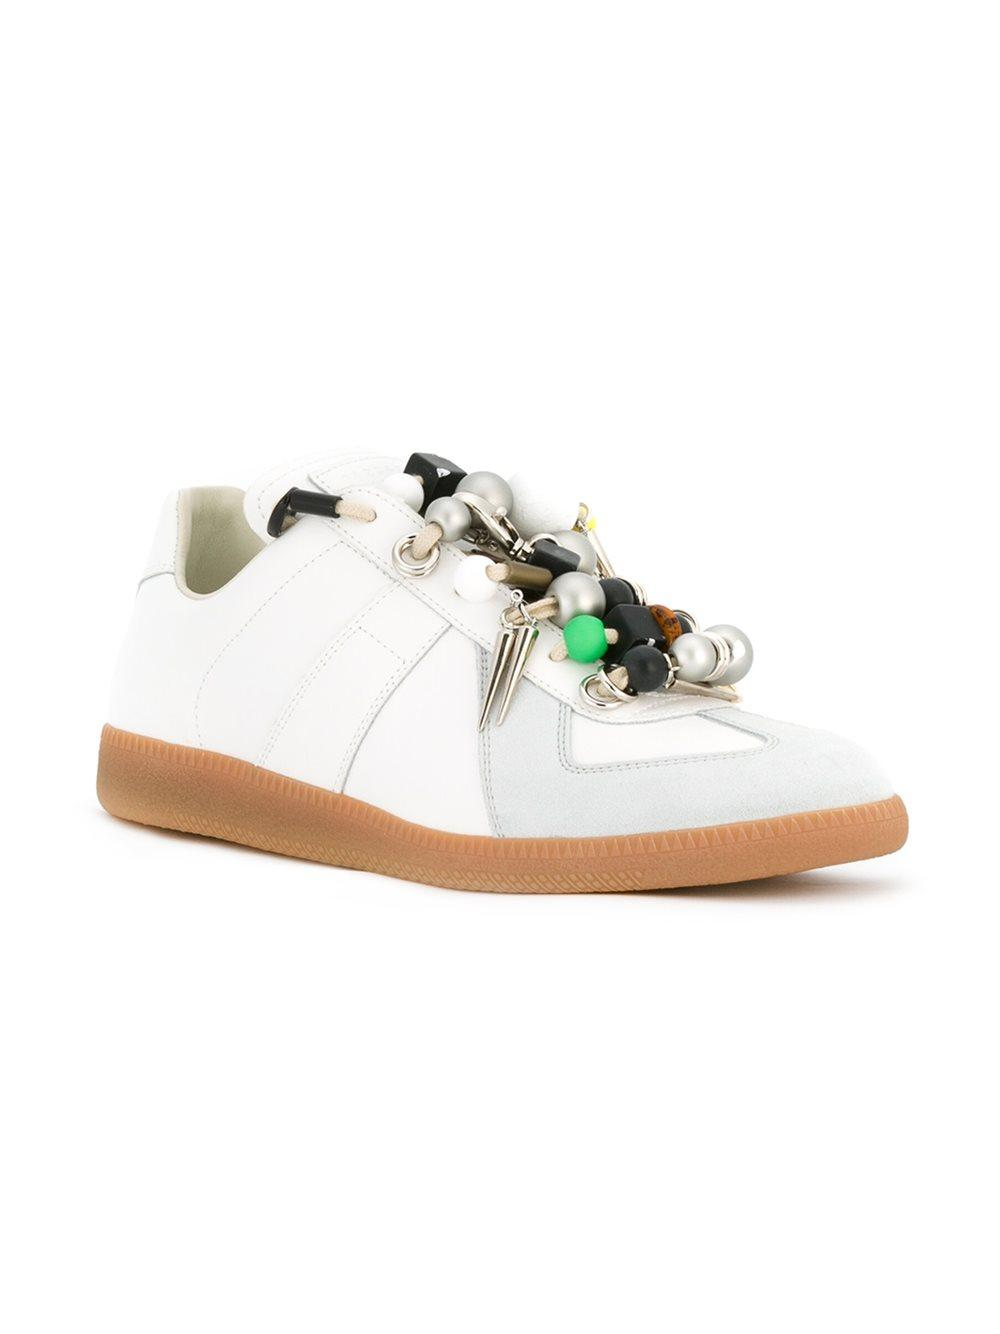 Lyst - Maison Margiela Replica Beaded Leather Sneakers in White